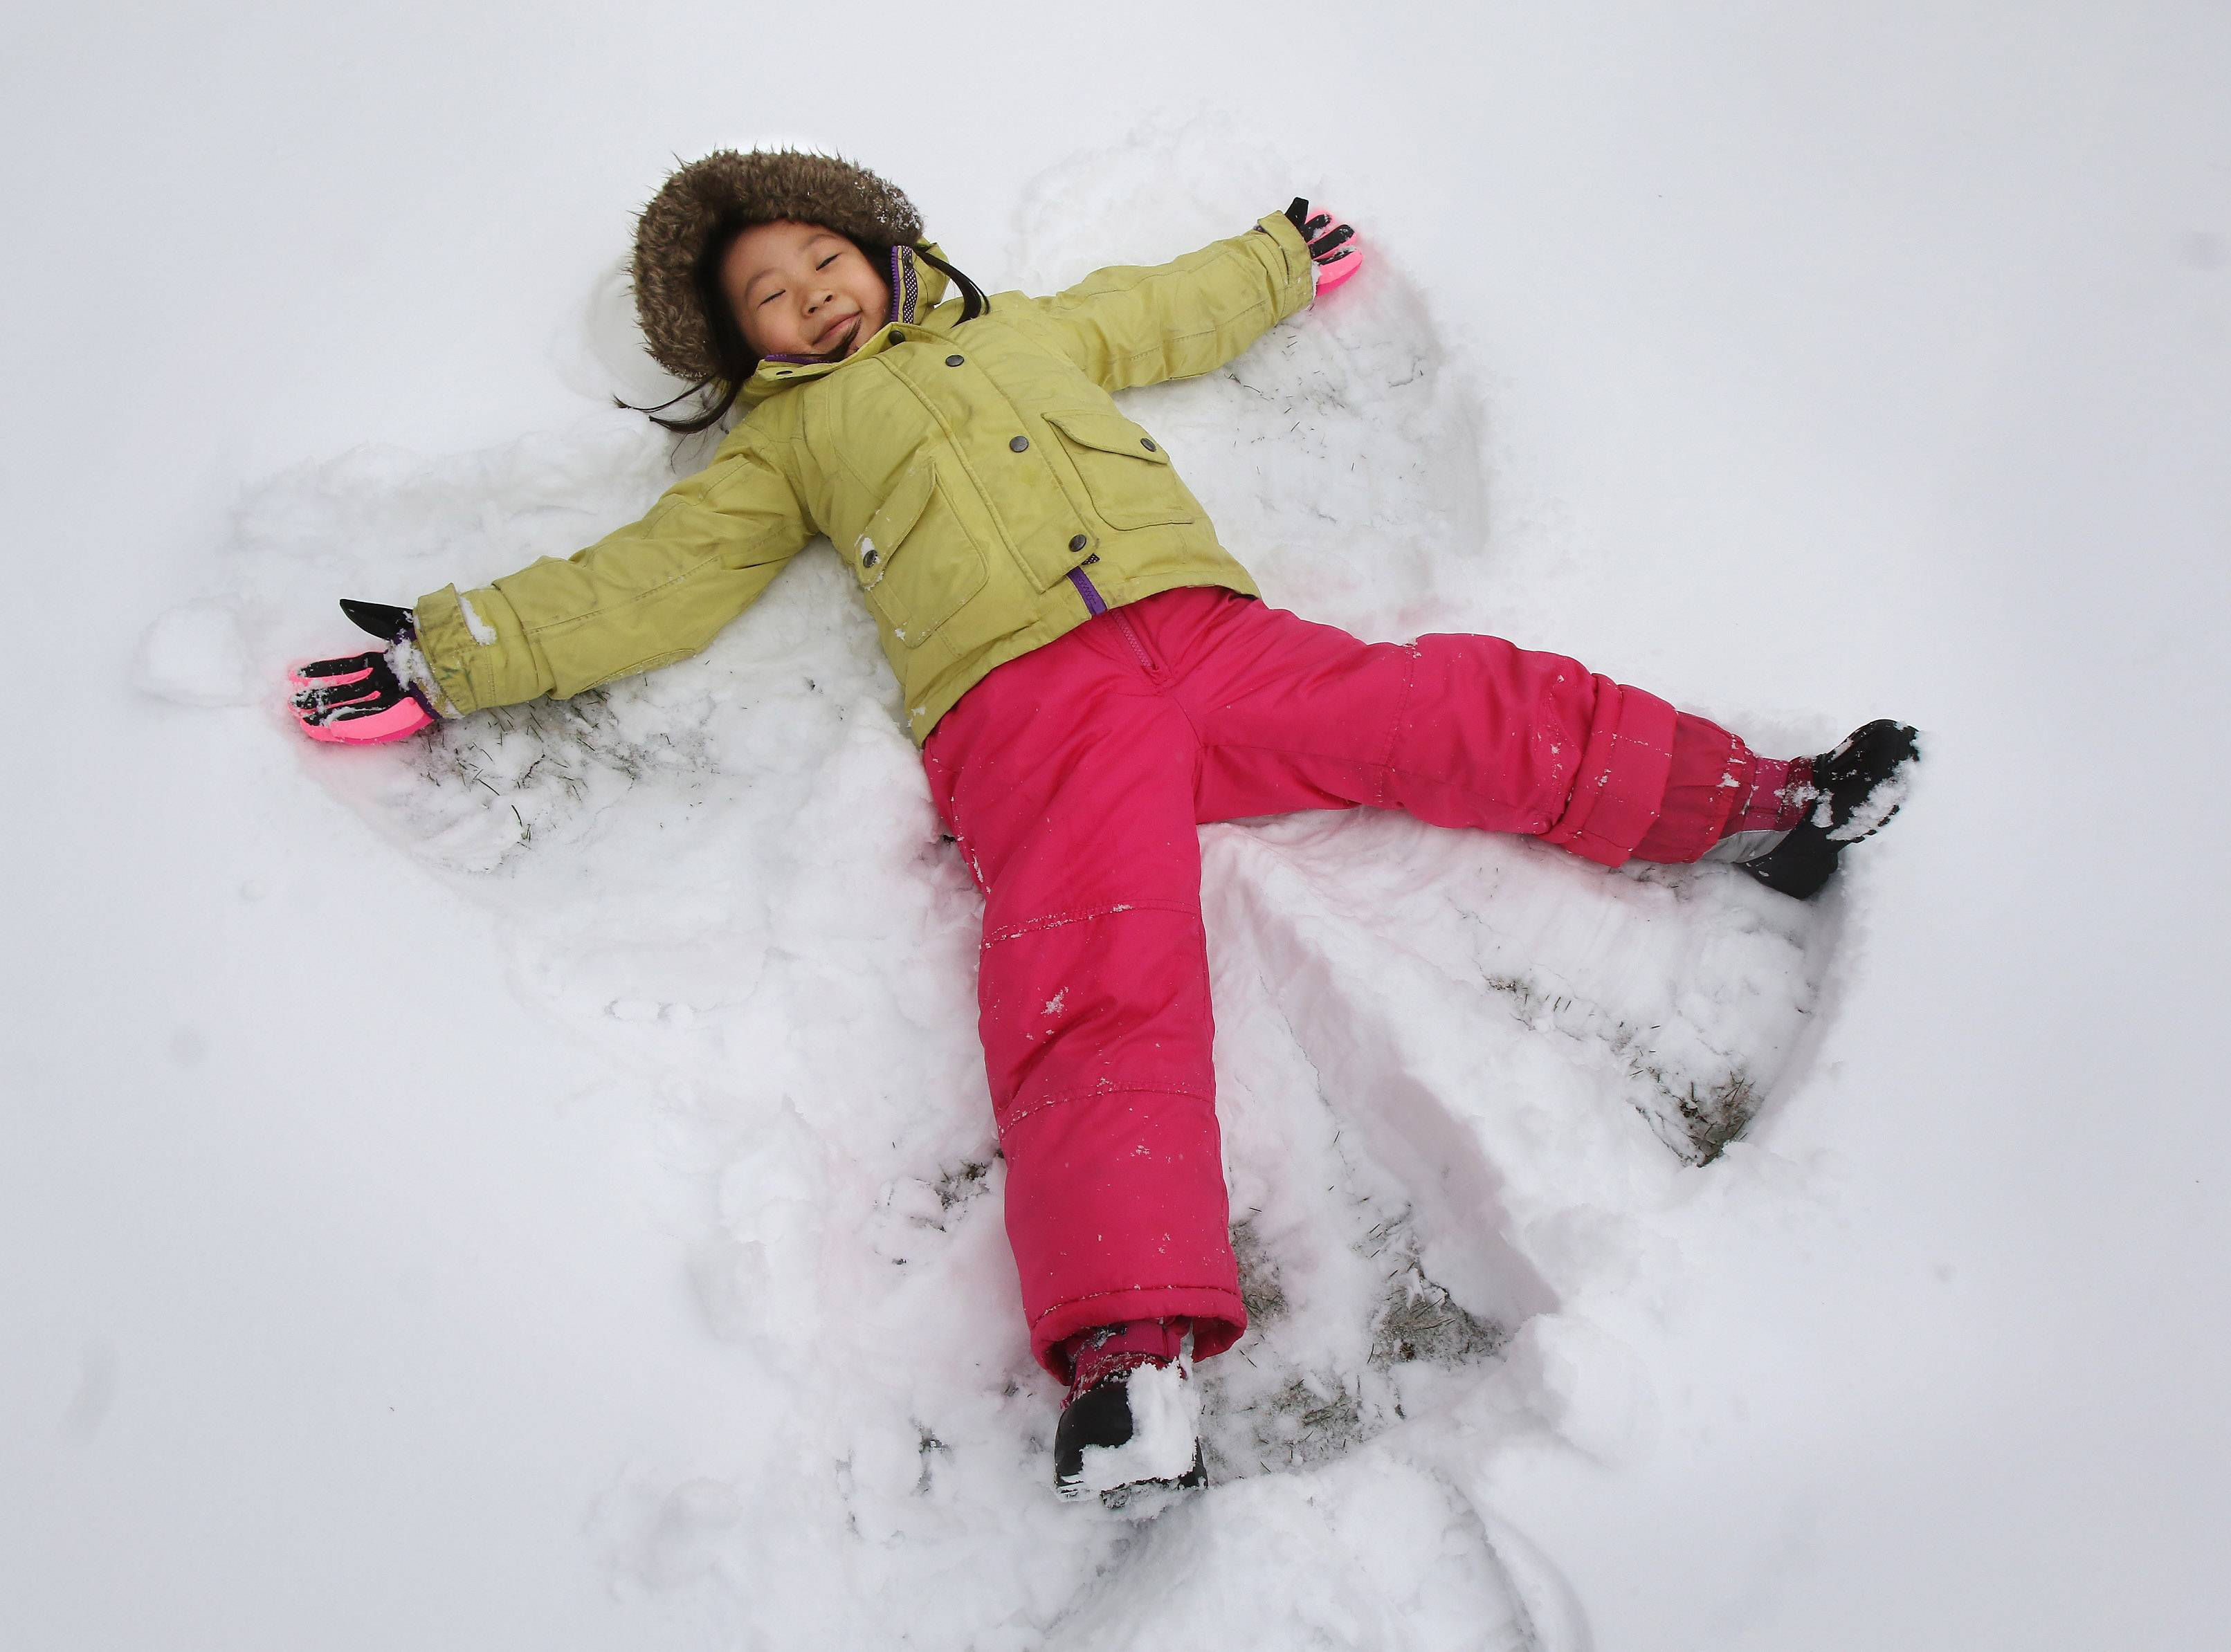 Five-year-old Claire Pyo makes a snow angel near her home in Vernon Hills on Monday after snow fell during the night before.